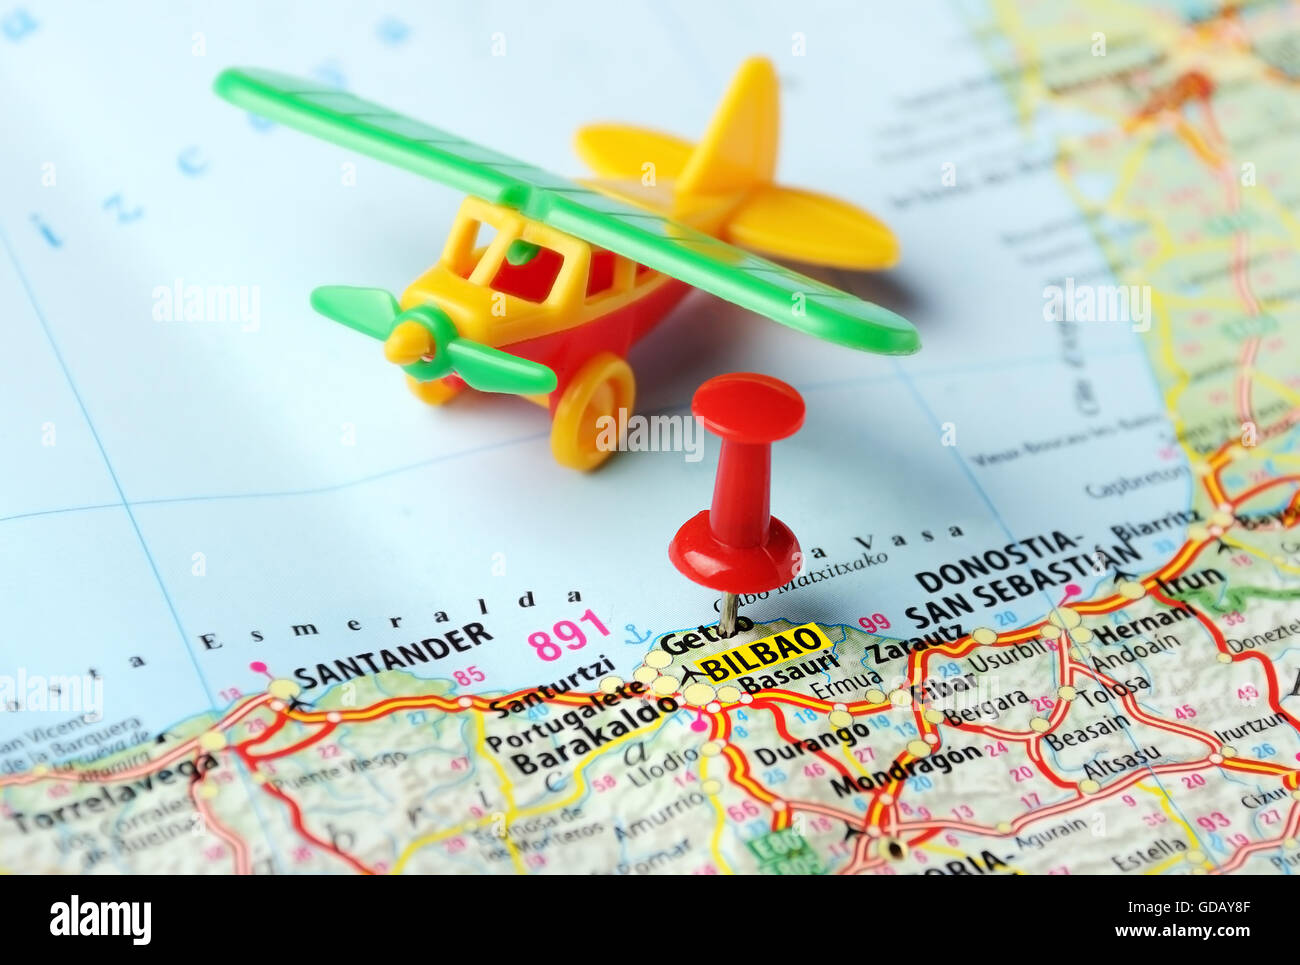 Bilbao On Map Of Spain.Close Up Of Bilbao Spain Map Airplane And Red Pin Travel Stock